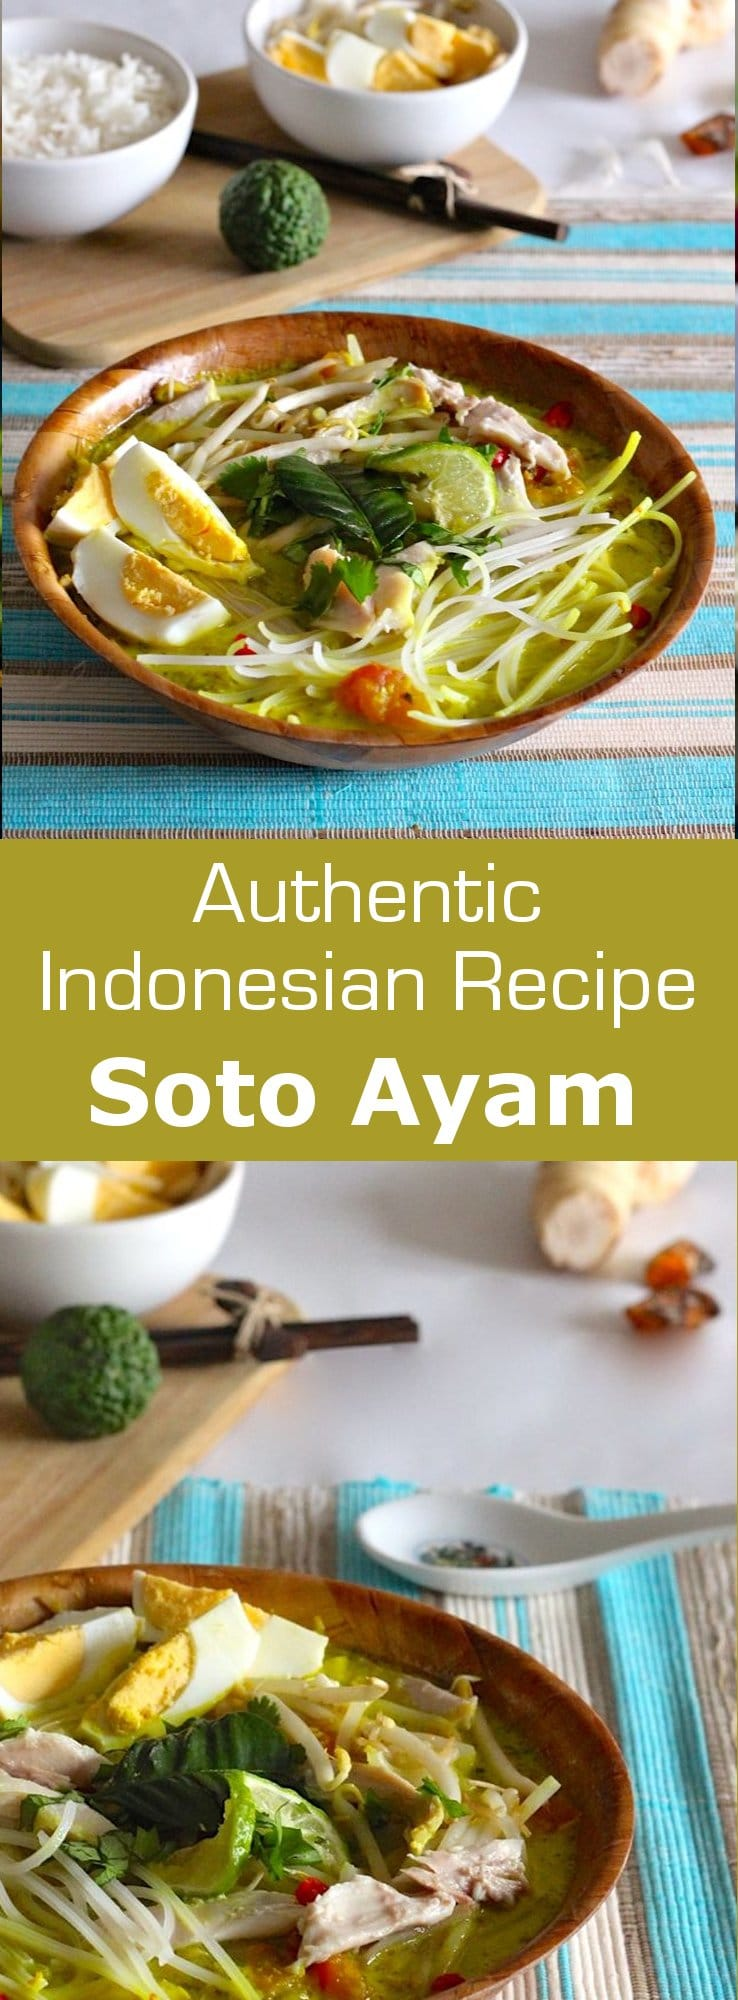 Soto Ayam is a traditional Indonesian chicken noodle soup deliciously flavored, also served in Malaysia, Singapore and Suriname. #soup #asian #196flavors